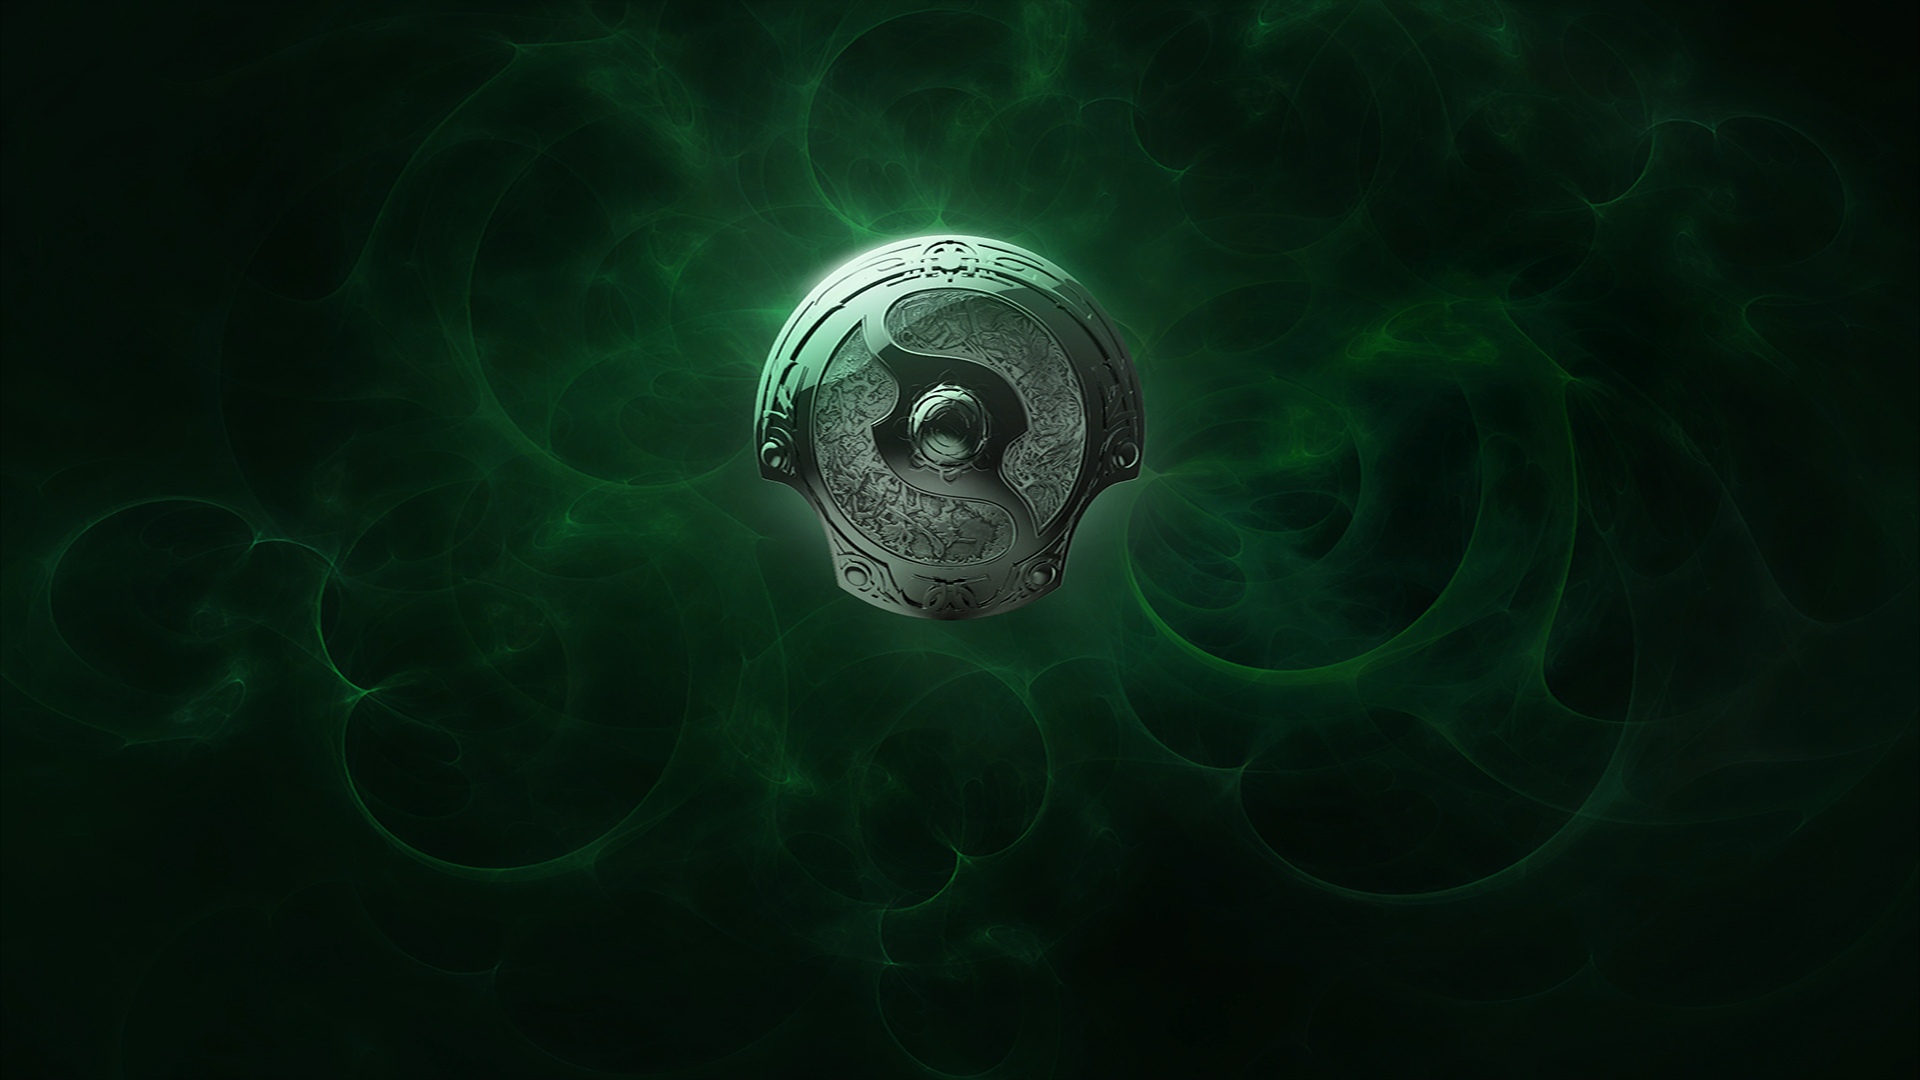 Video Game - DotA 2  Wallpaper